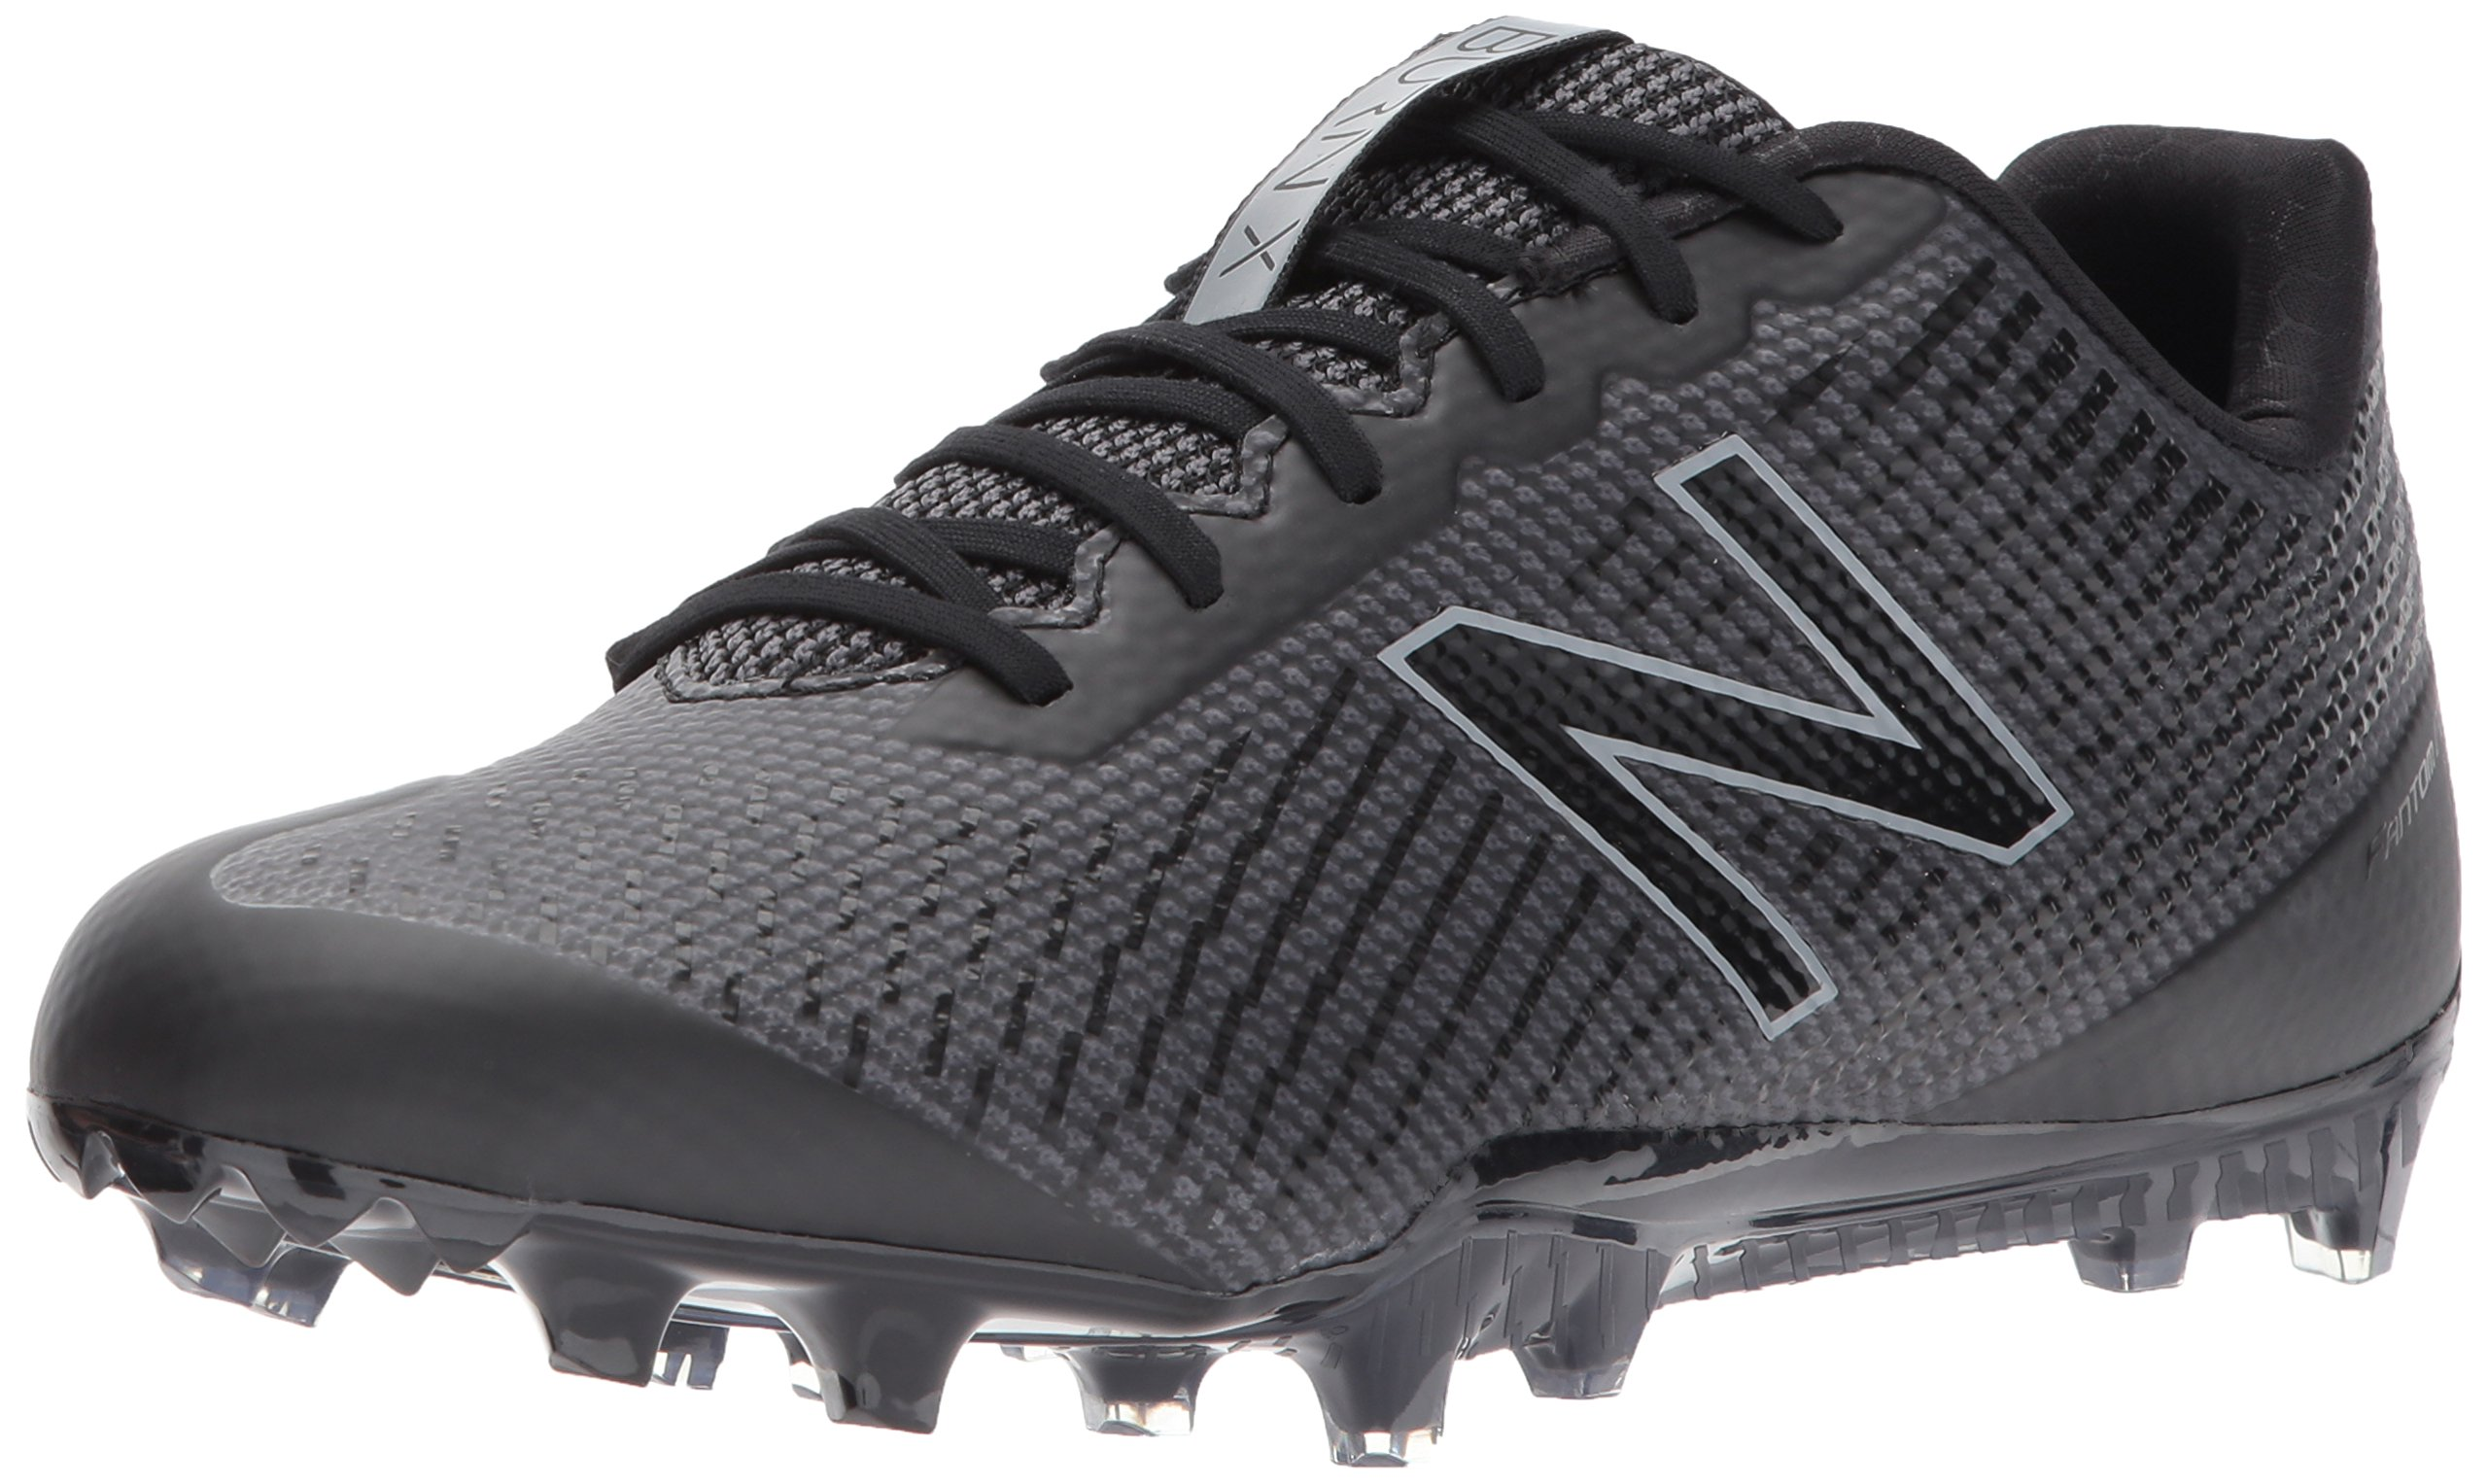 New Balance Men's Burn Low Speed Lacrosse Shoe, Black, 9.5 2E US by New Balance